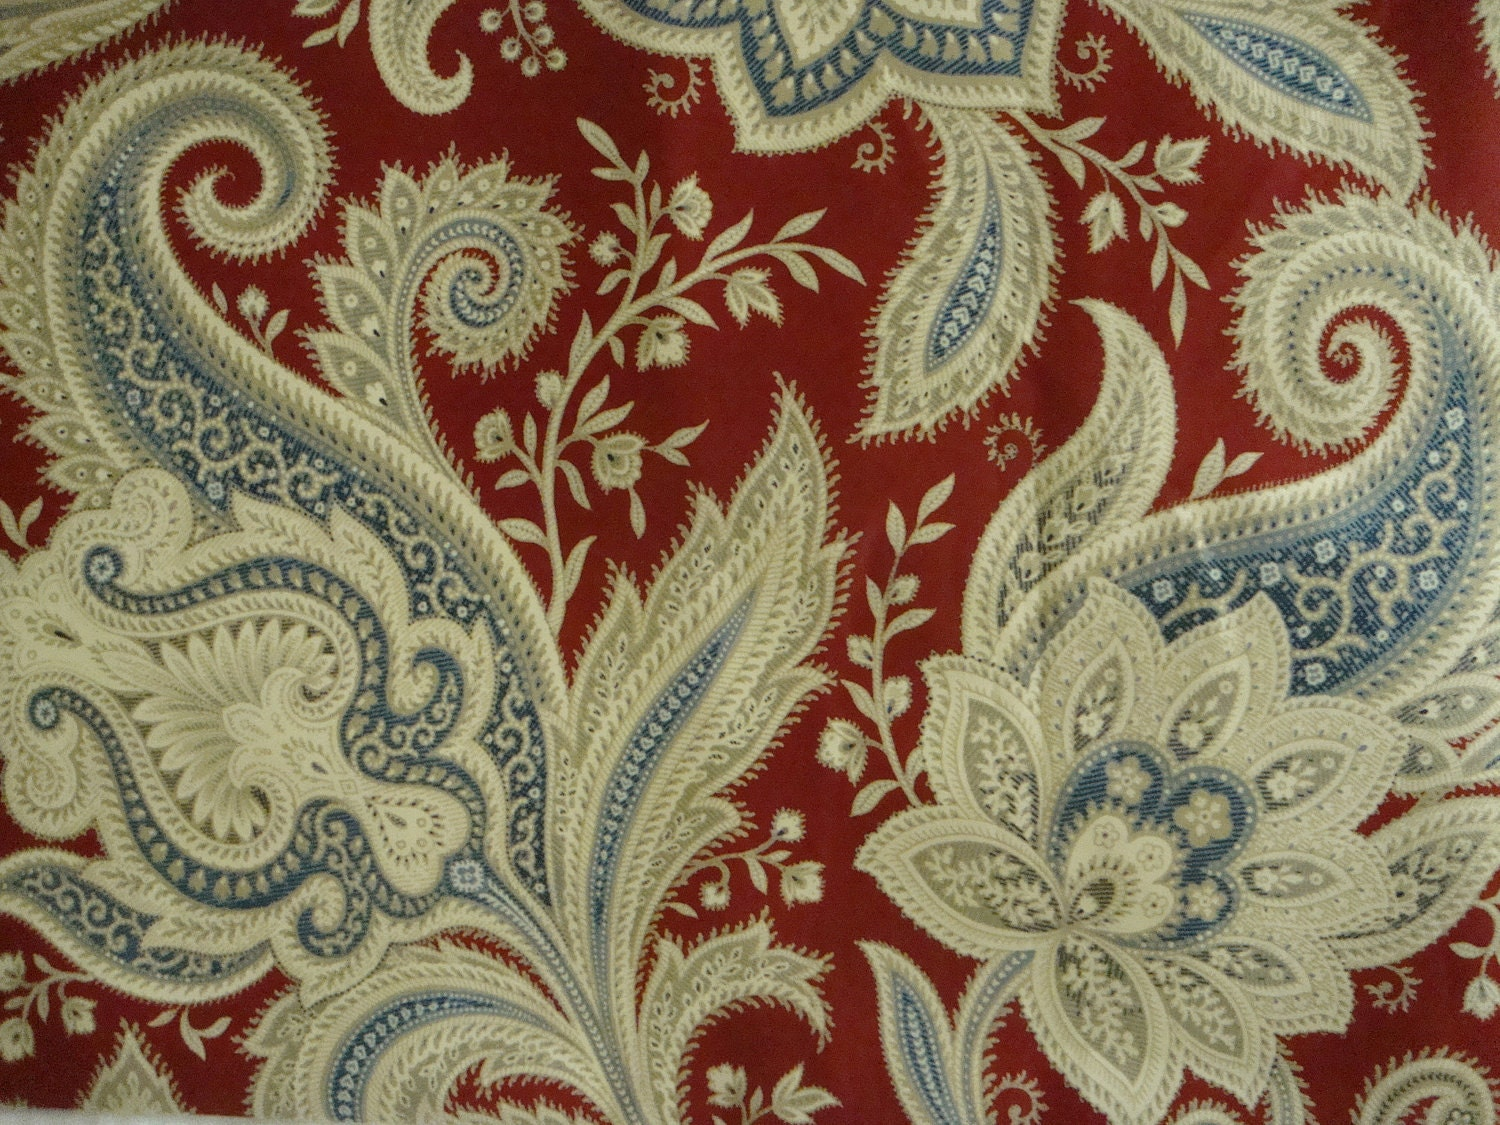 Cotton Upholstery Fabric Blue And Rustic Red Paisley Floral